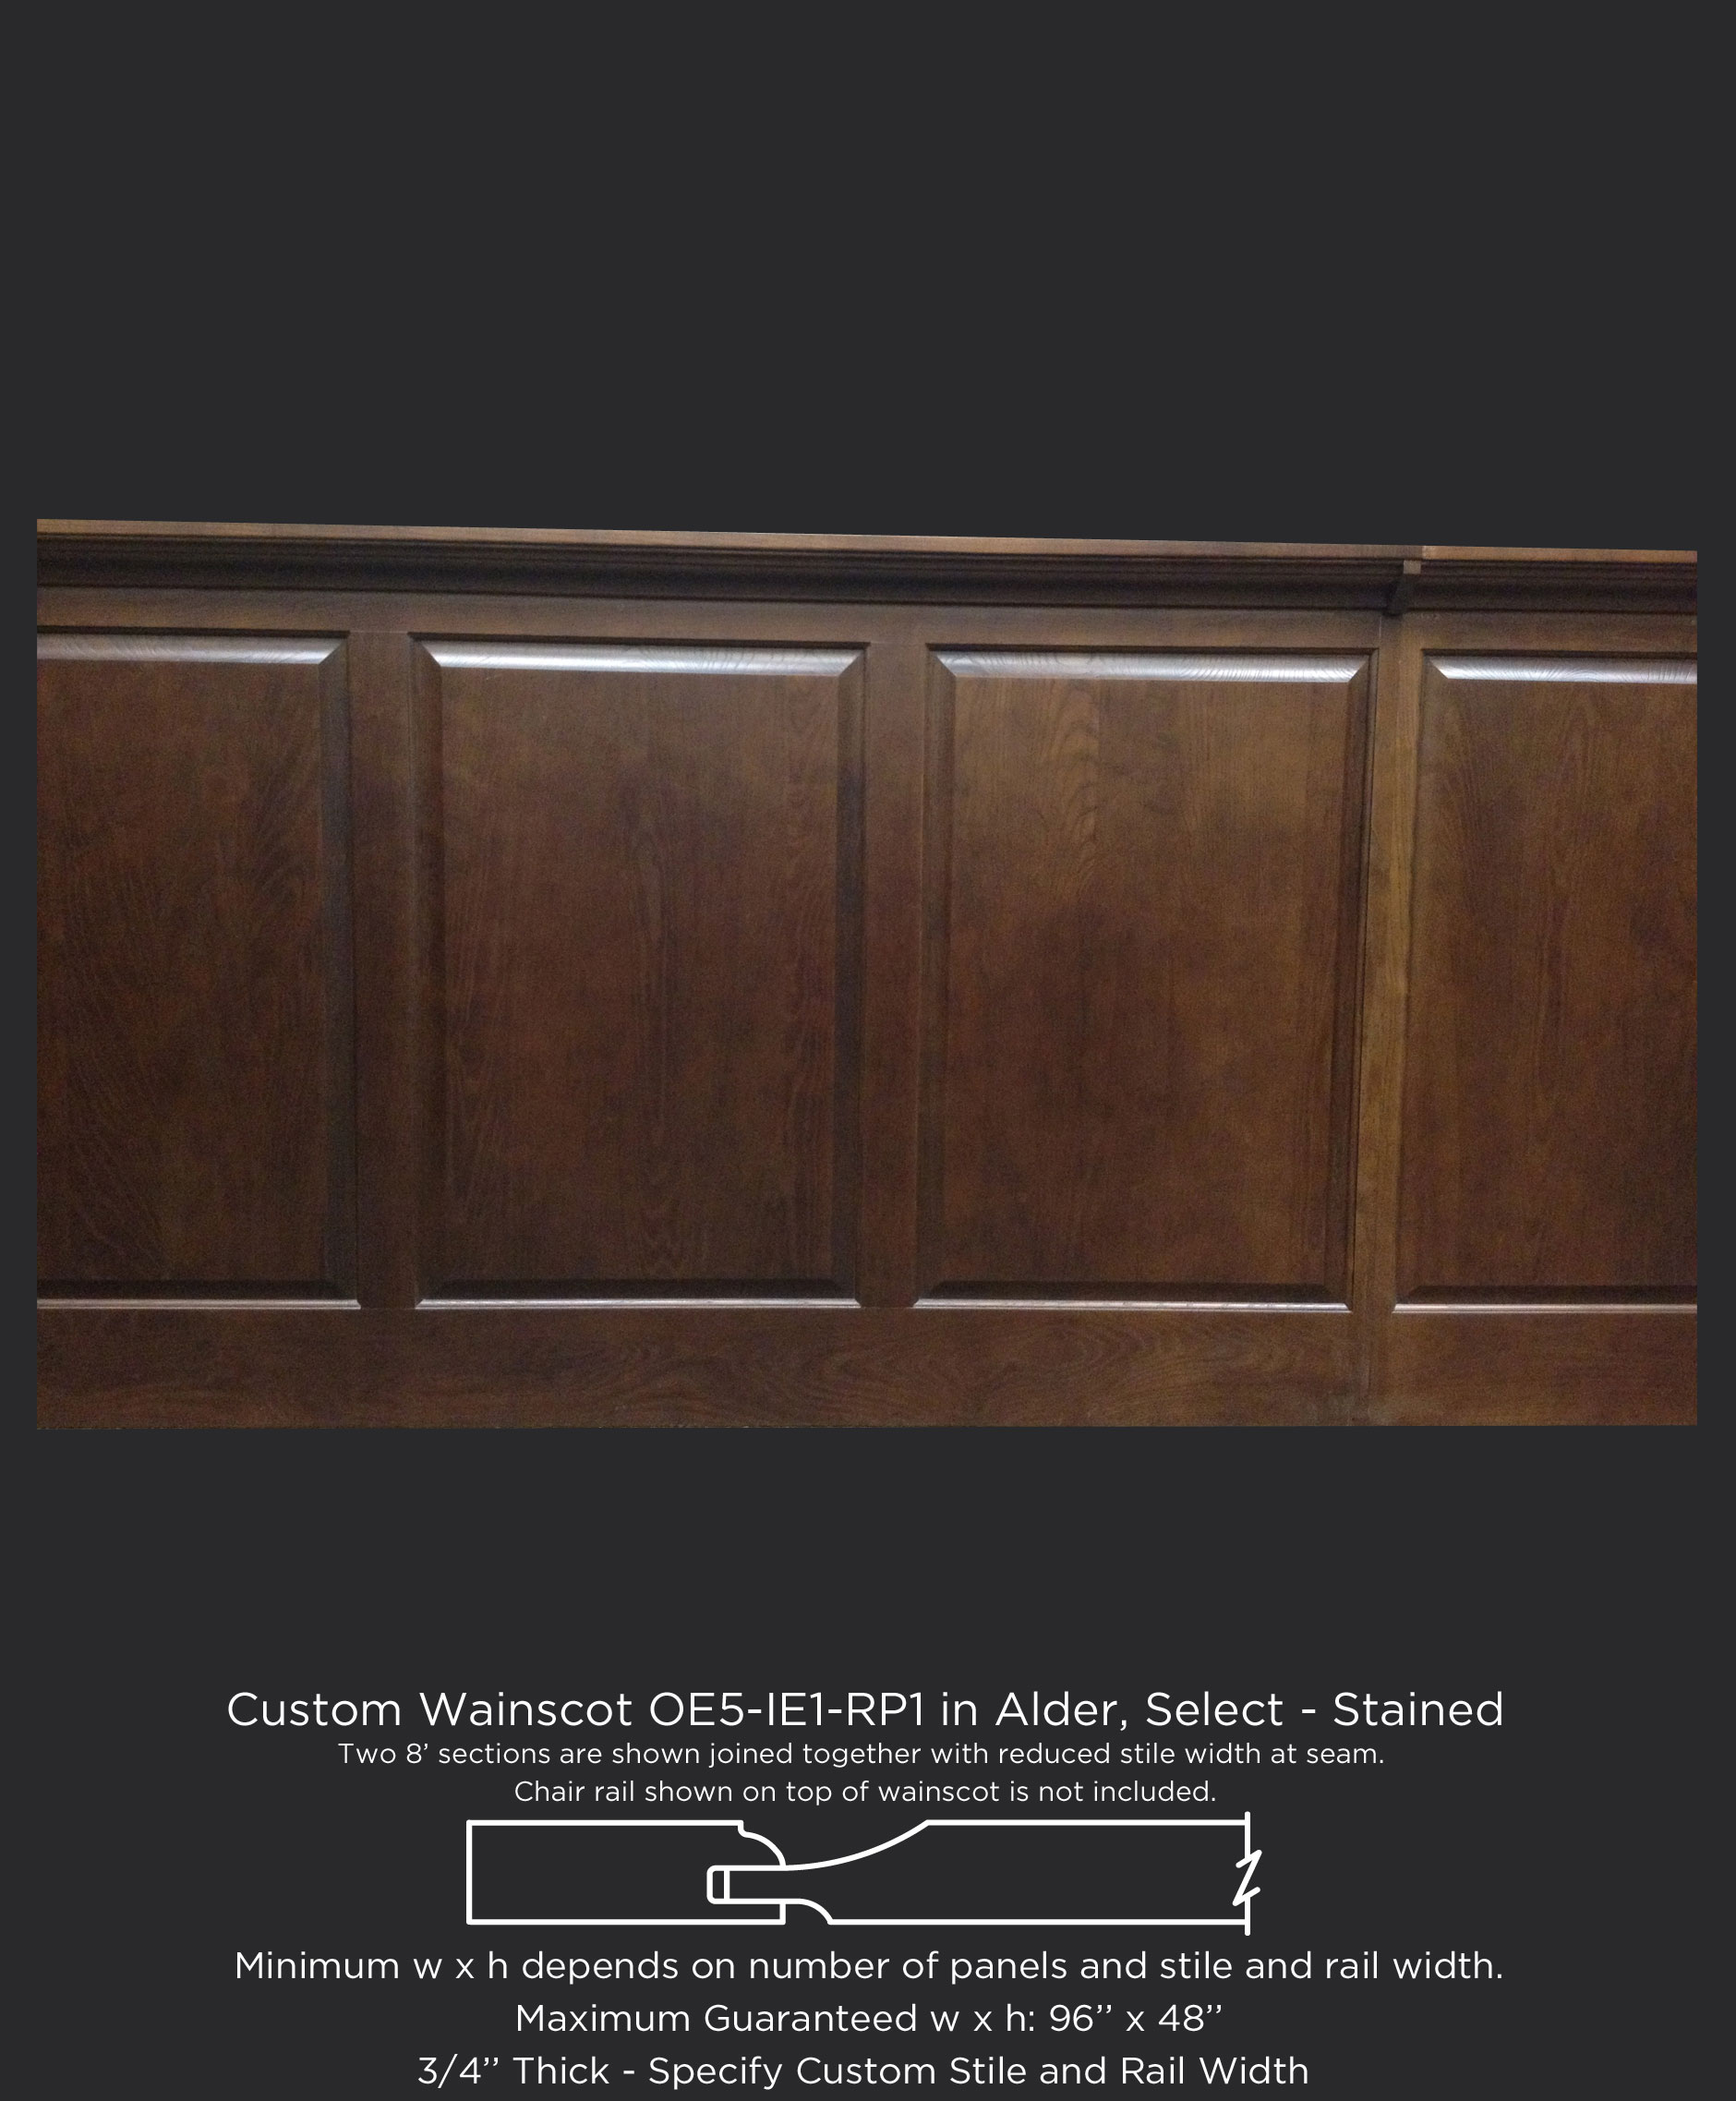 Custom wood wainscot with OE5-IE1-RP1 in Alder, Select and customer applied stained